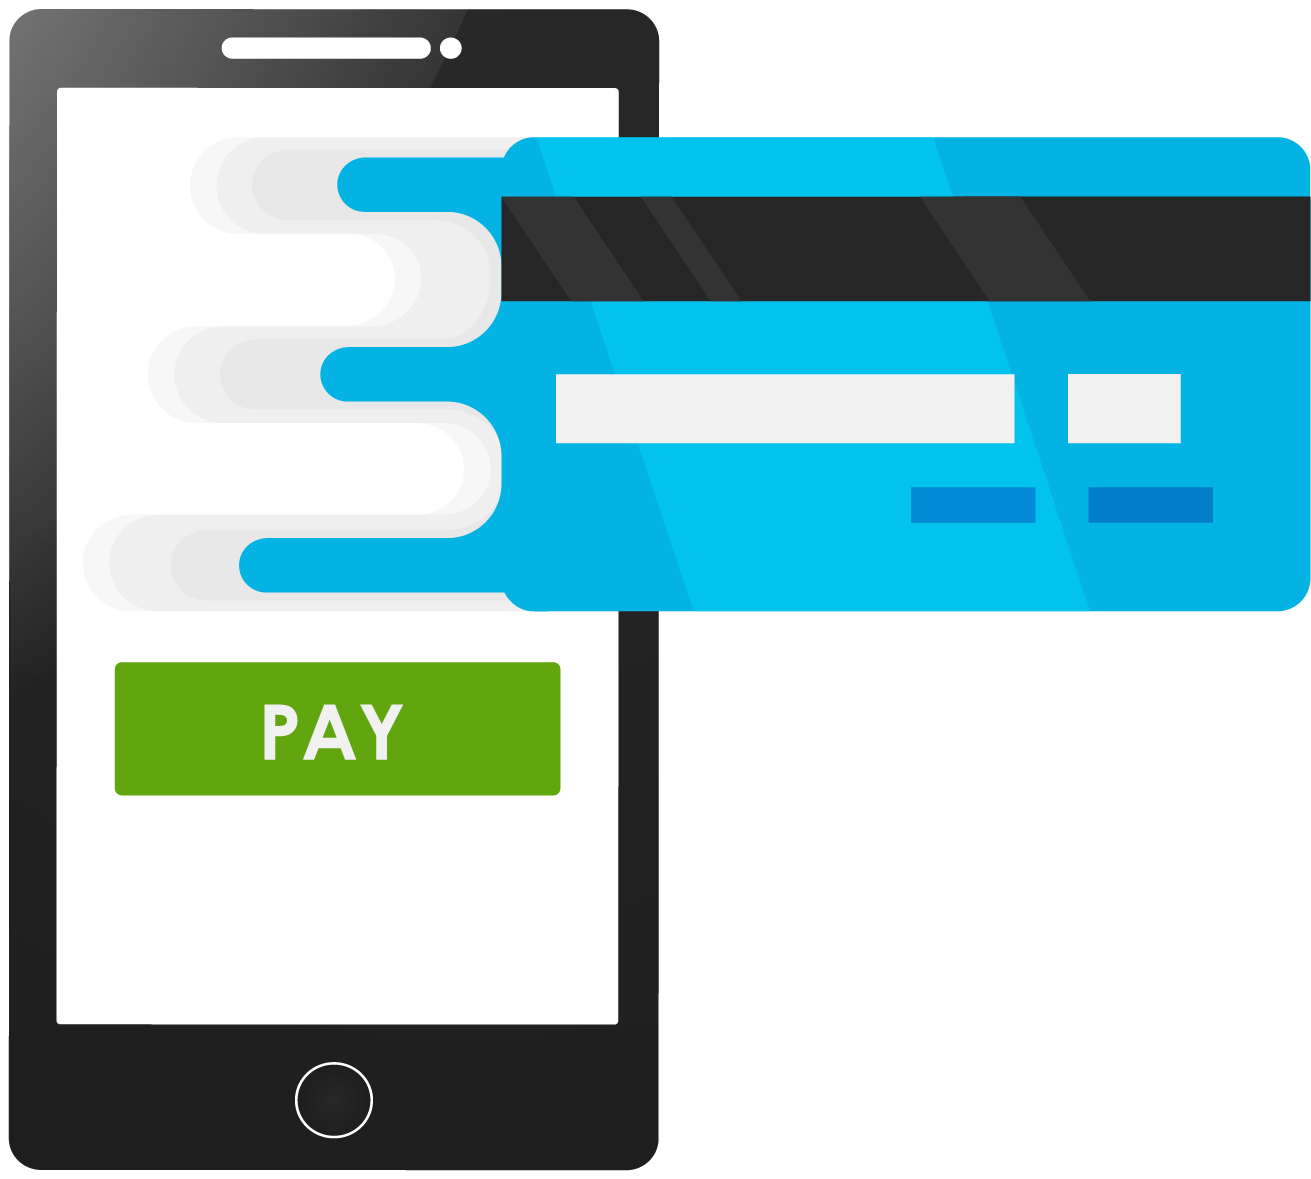 A smartphone with a credit card to pay on mobile devices.